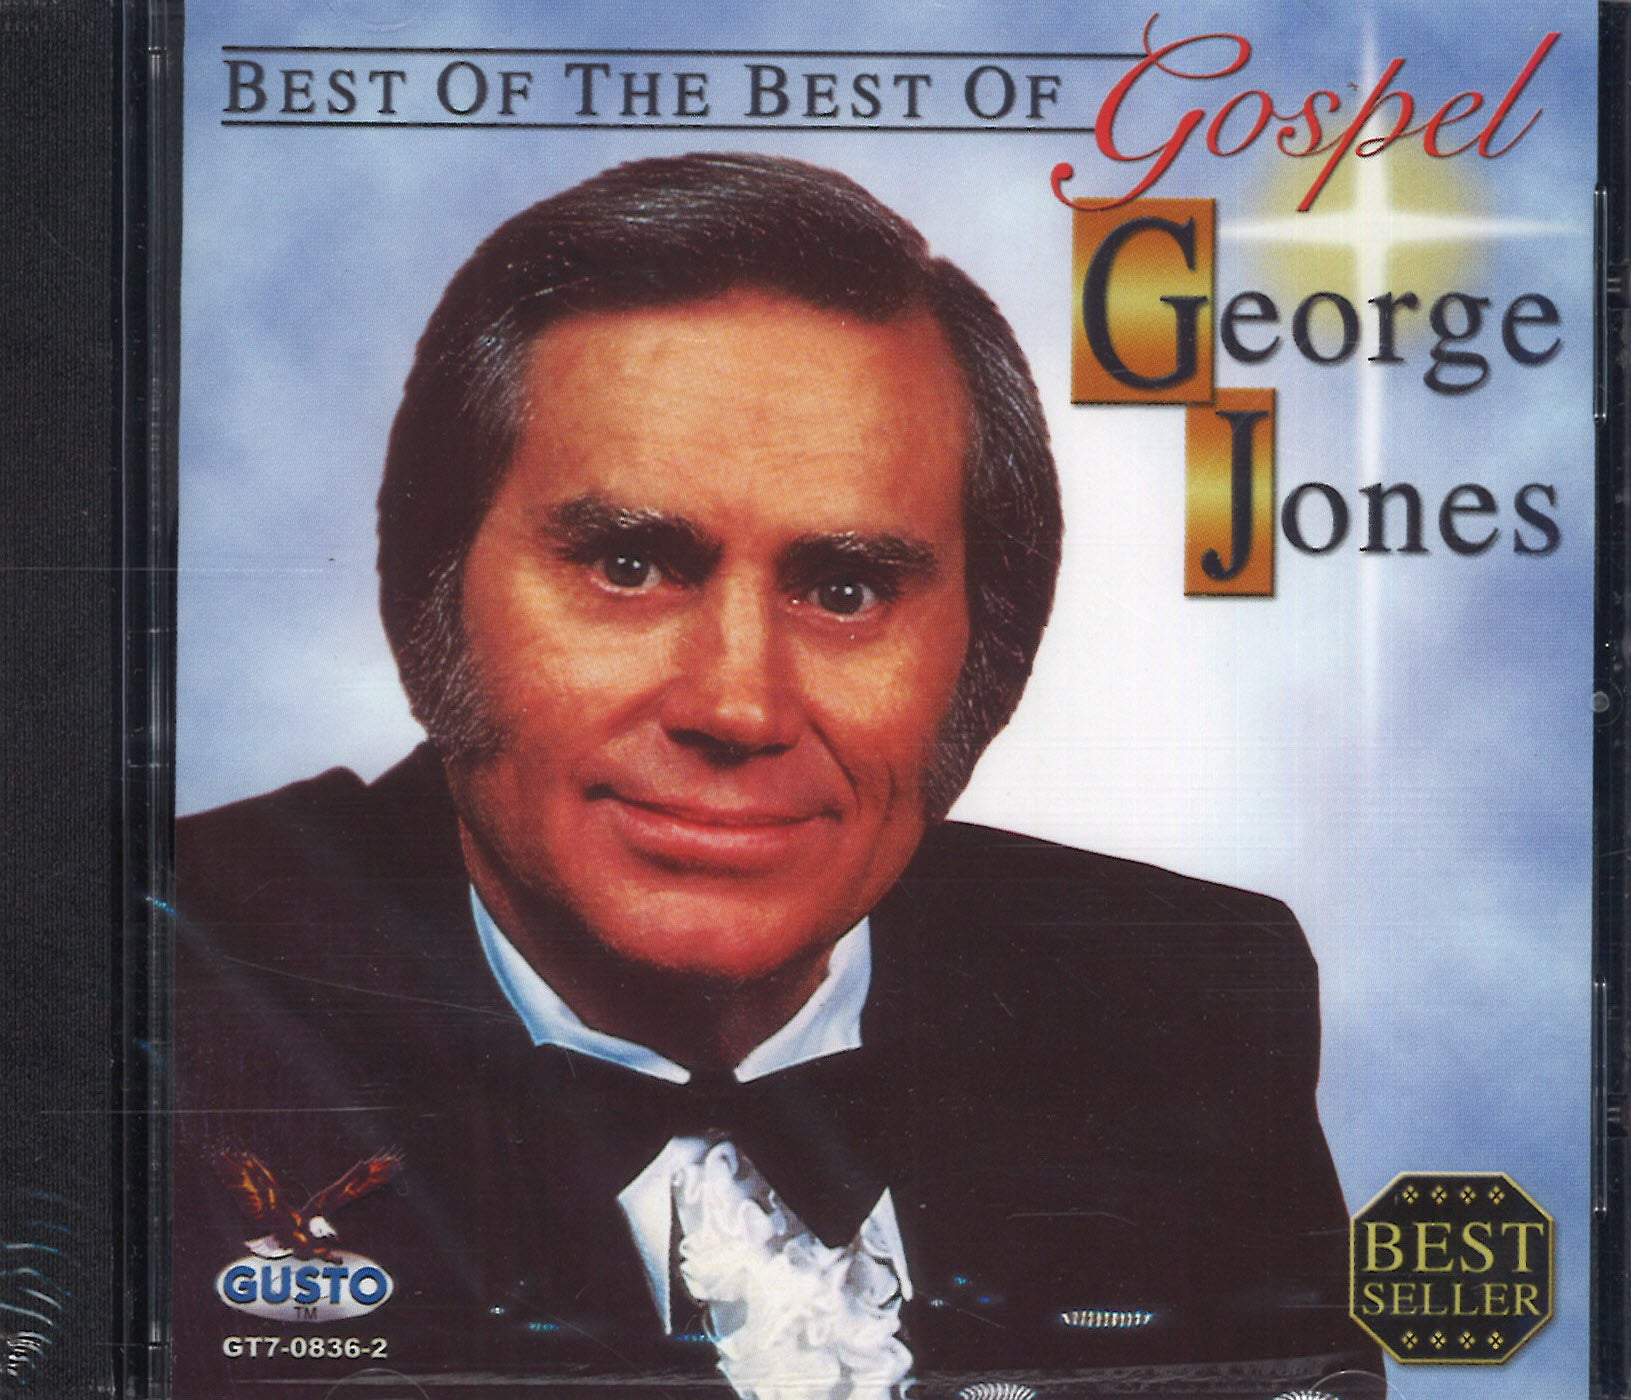 George Jones Best Of The Best Of Gospel